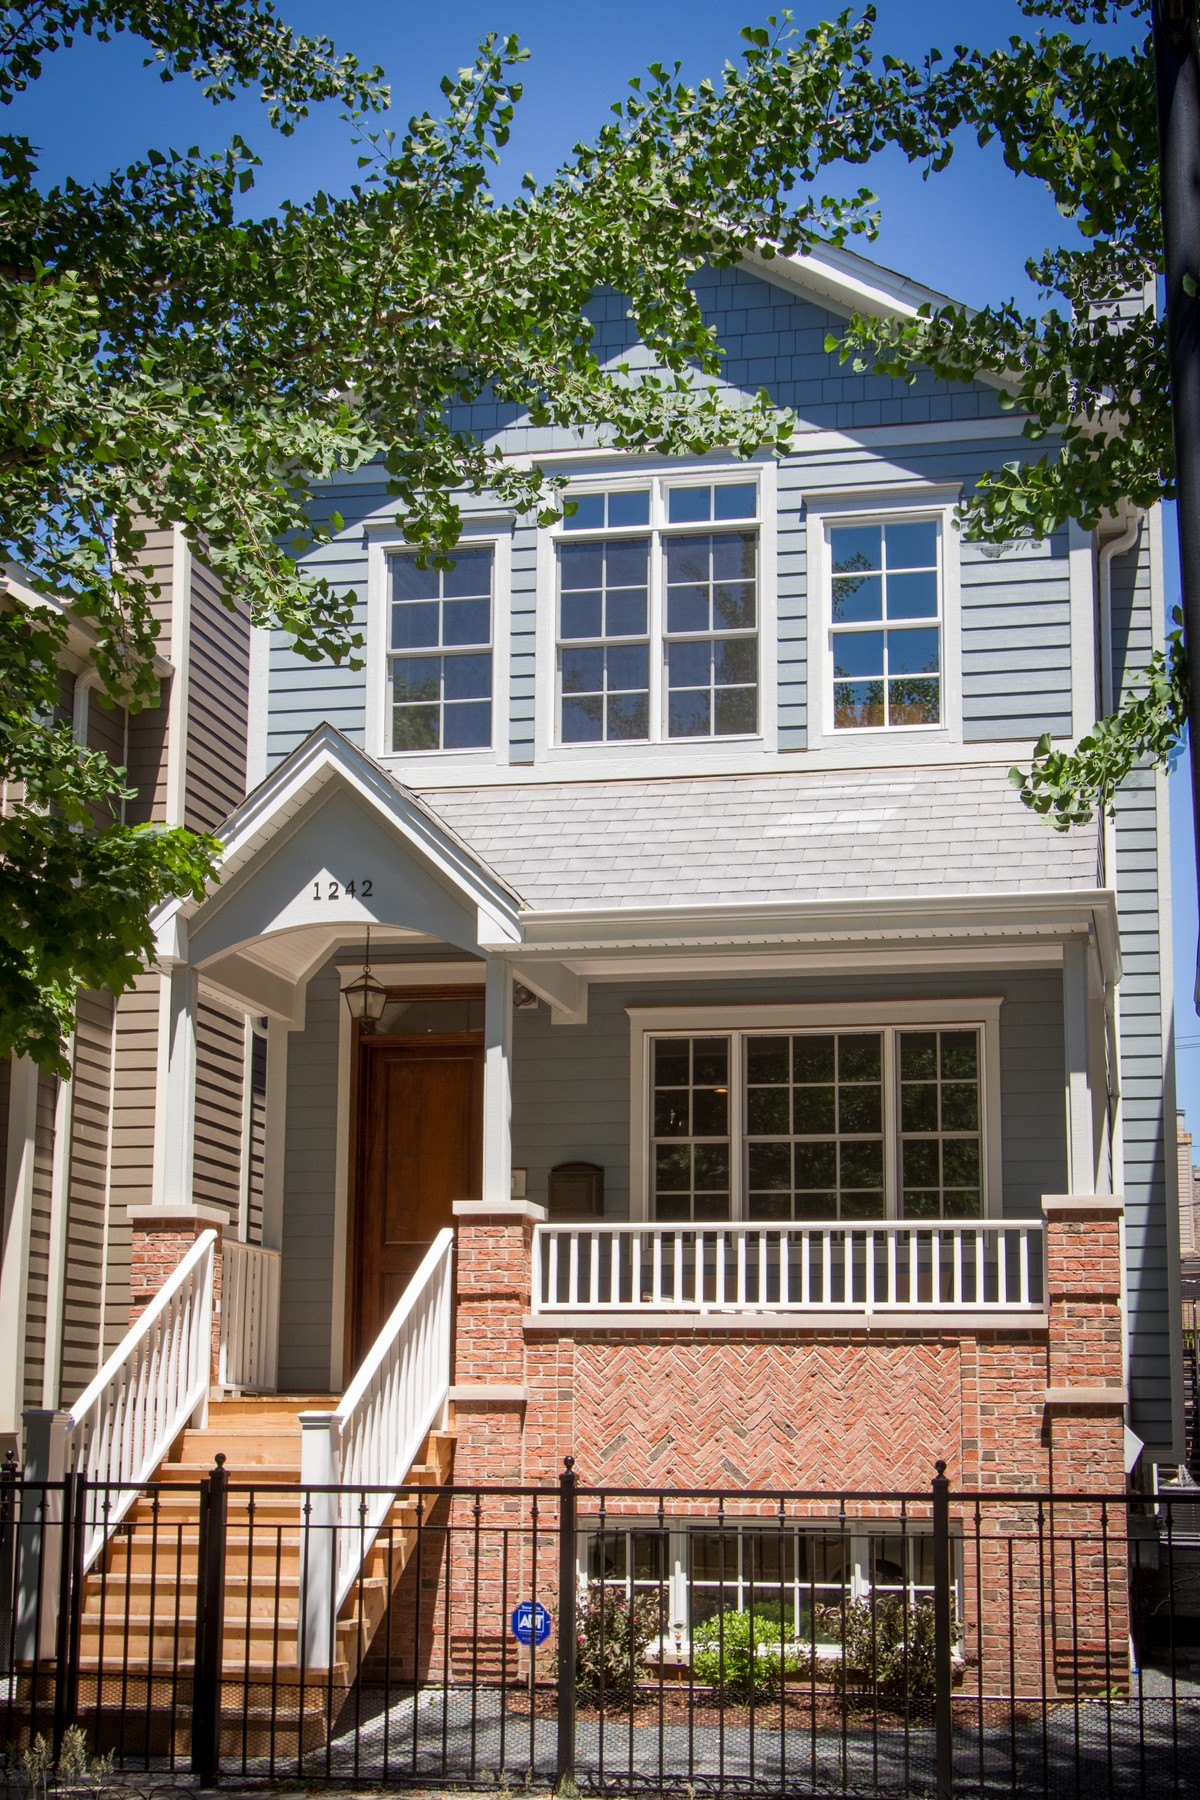 Single Family Home for Sale at New Construction Hardieboard Home 3223 N Hoyne Avenue North Center, Chicago, Illinois, 60618 United States